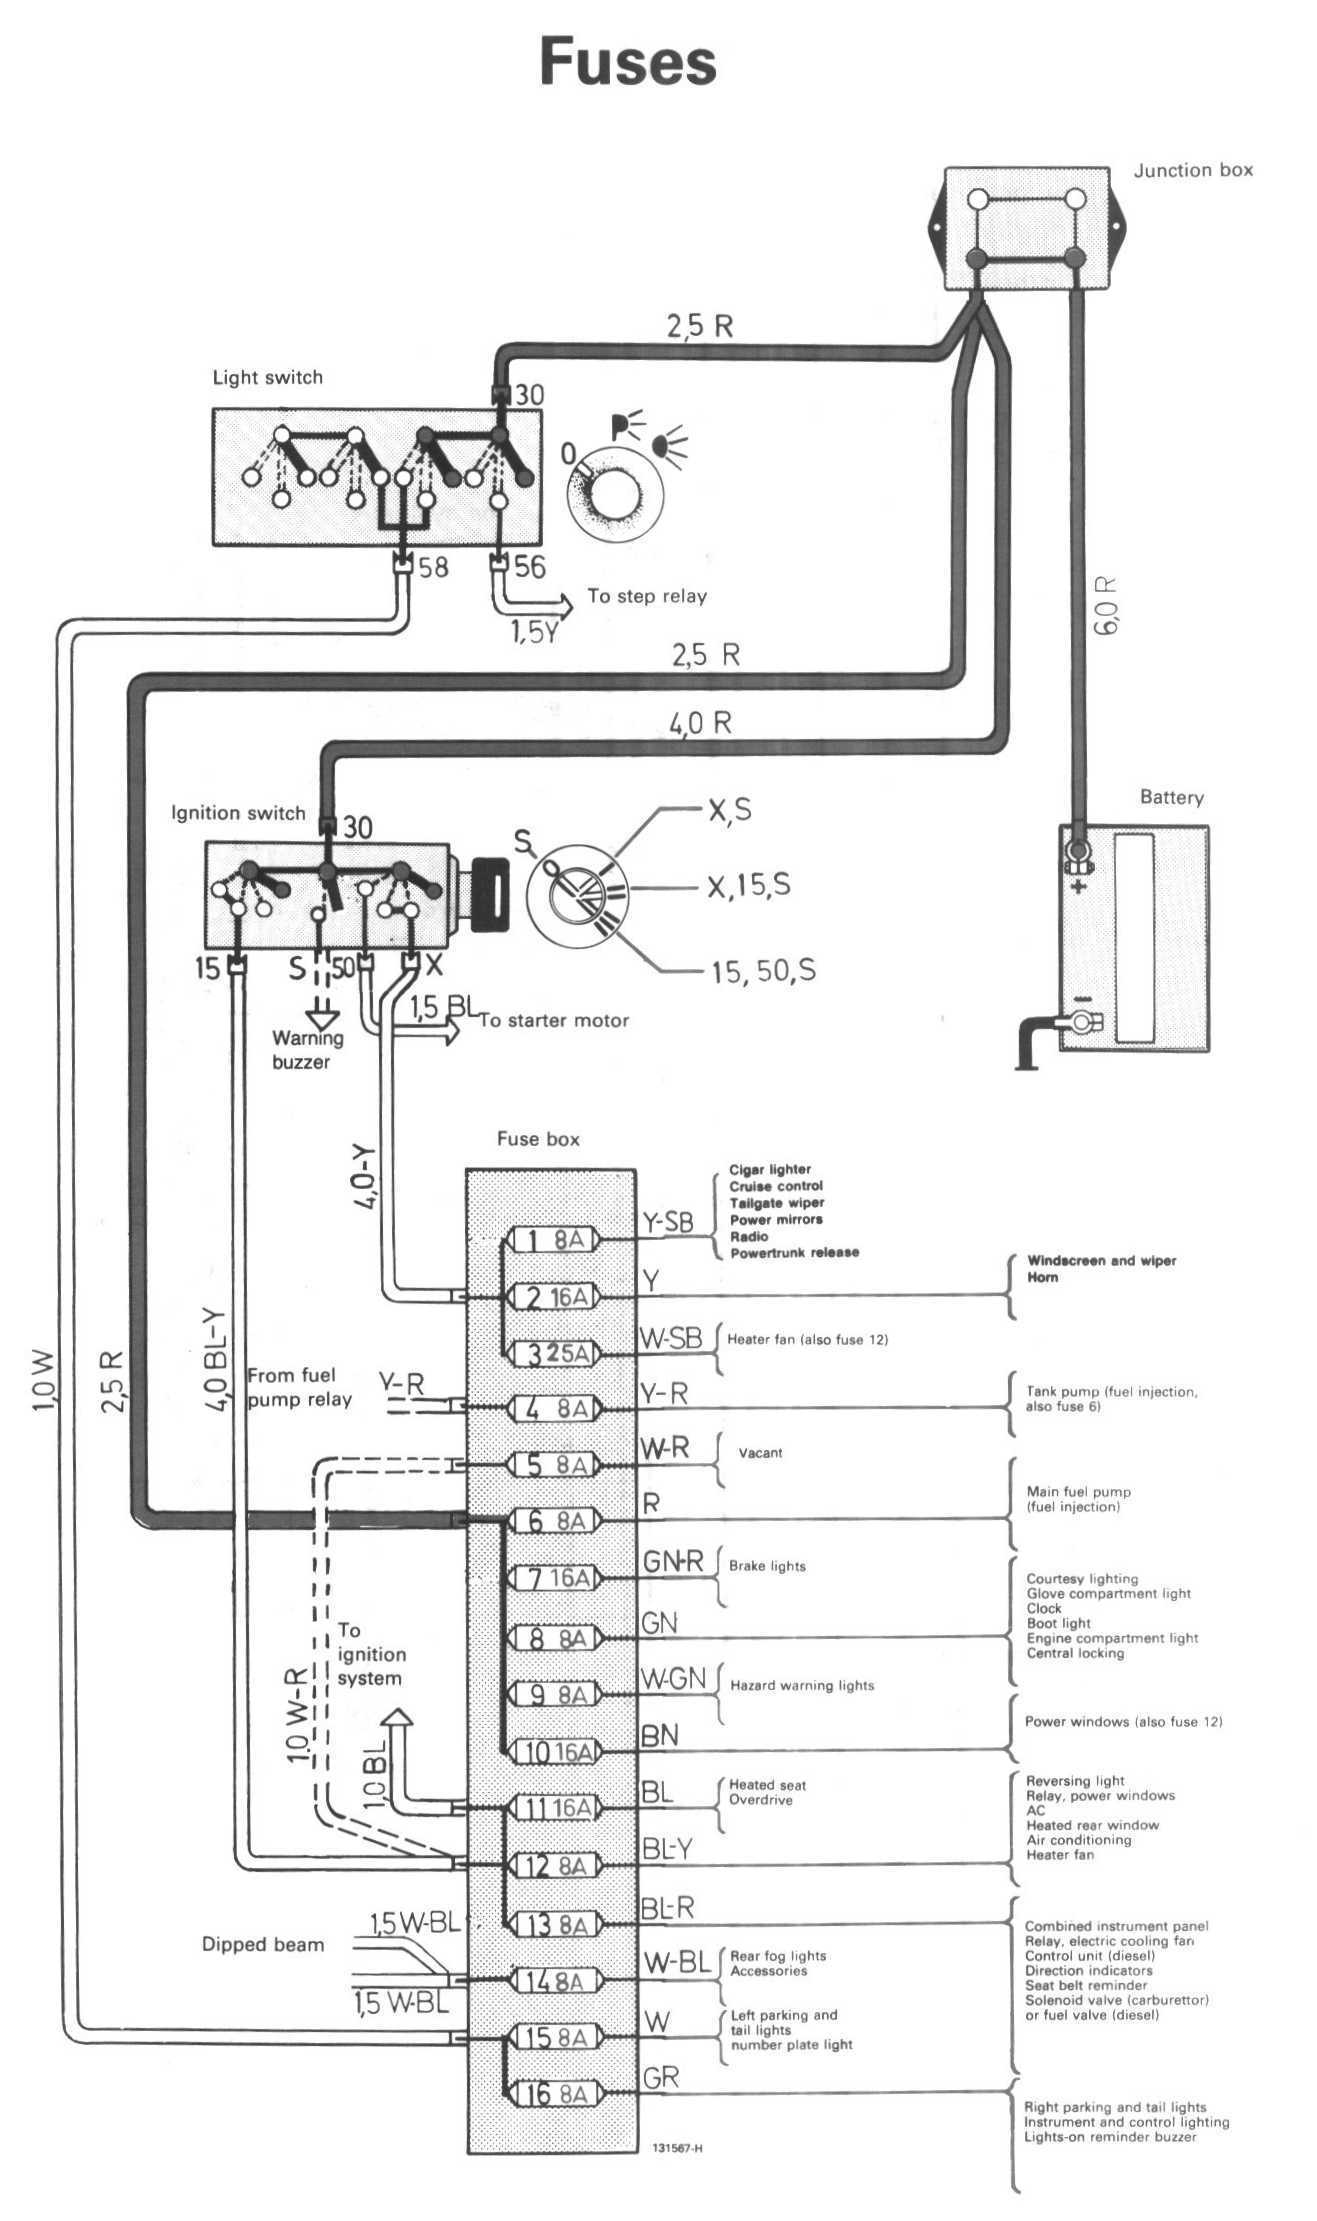 1990 Volvo Fuse Box Diy Enthusiasts Wiring Diagrams Alfa Romeo 240 Diagram Data U2022 Rh Naopak Co 740 Location